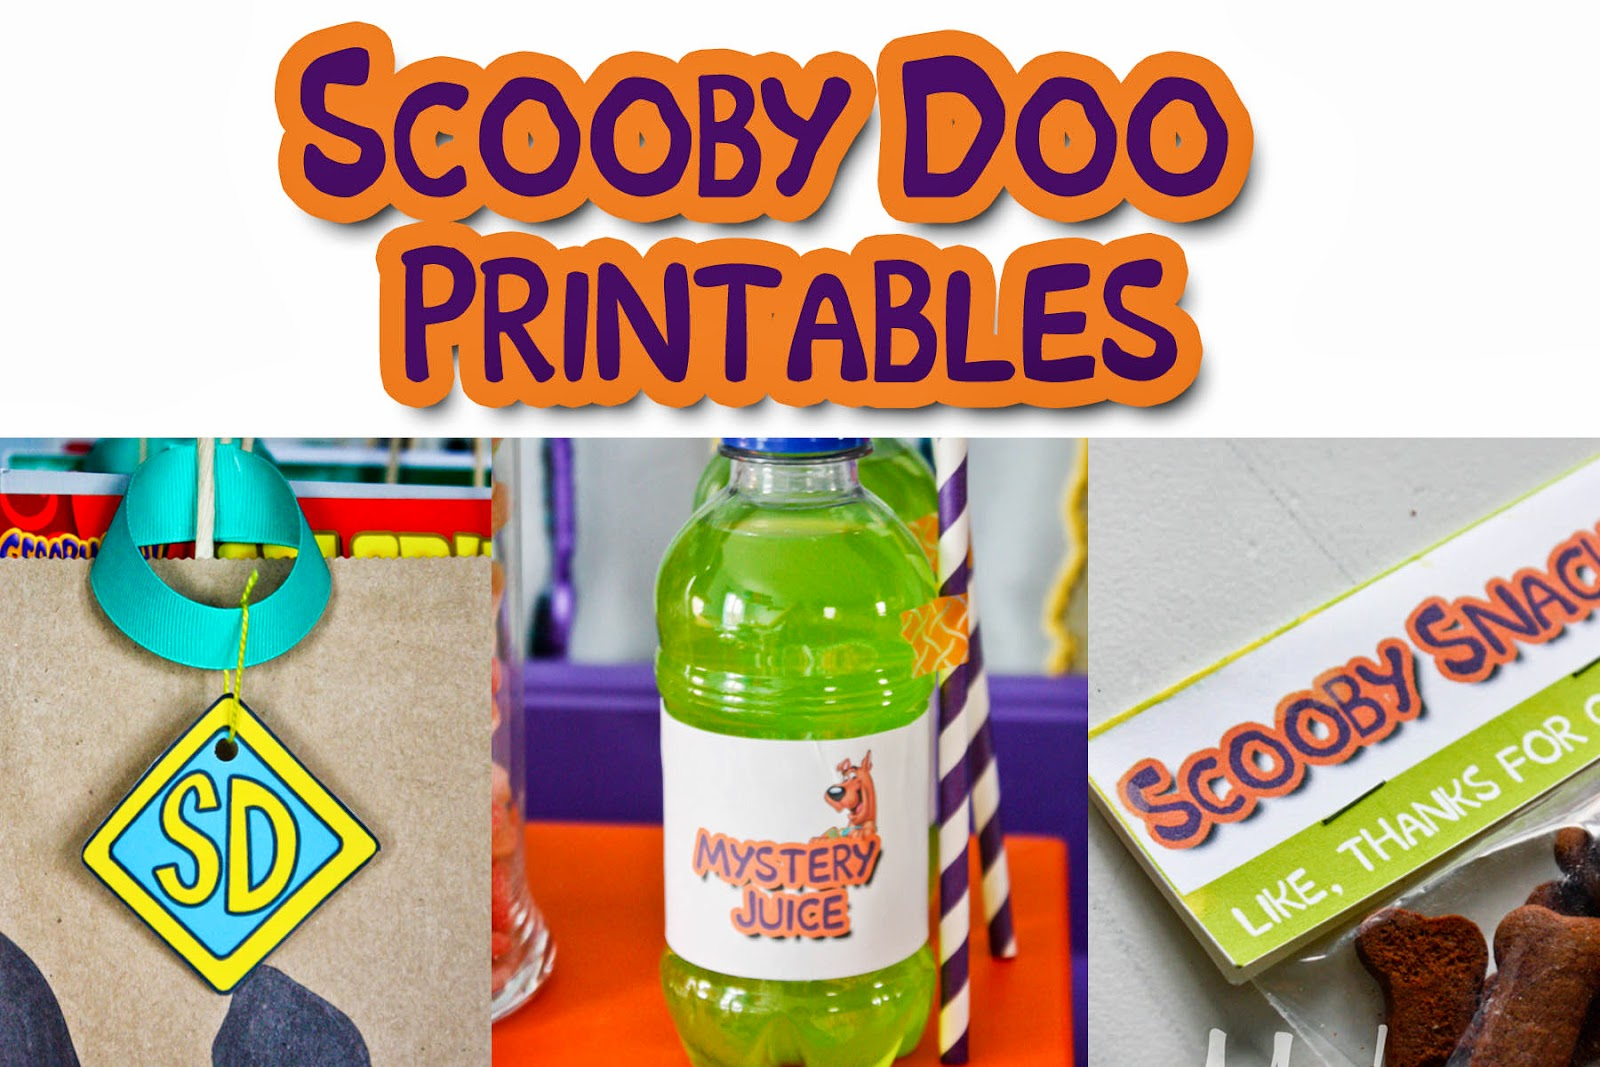 graphic about Scooby Doo Printable identify Free of charge Printable Friday: Scooby Doo Printables - vixenmade events